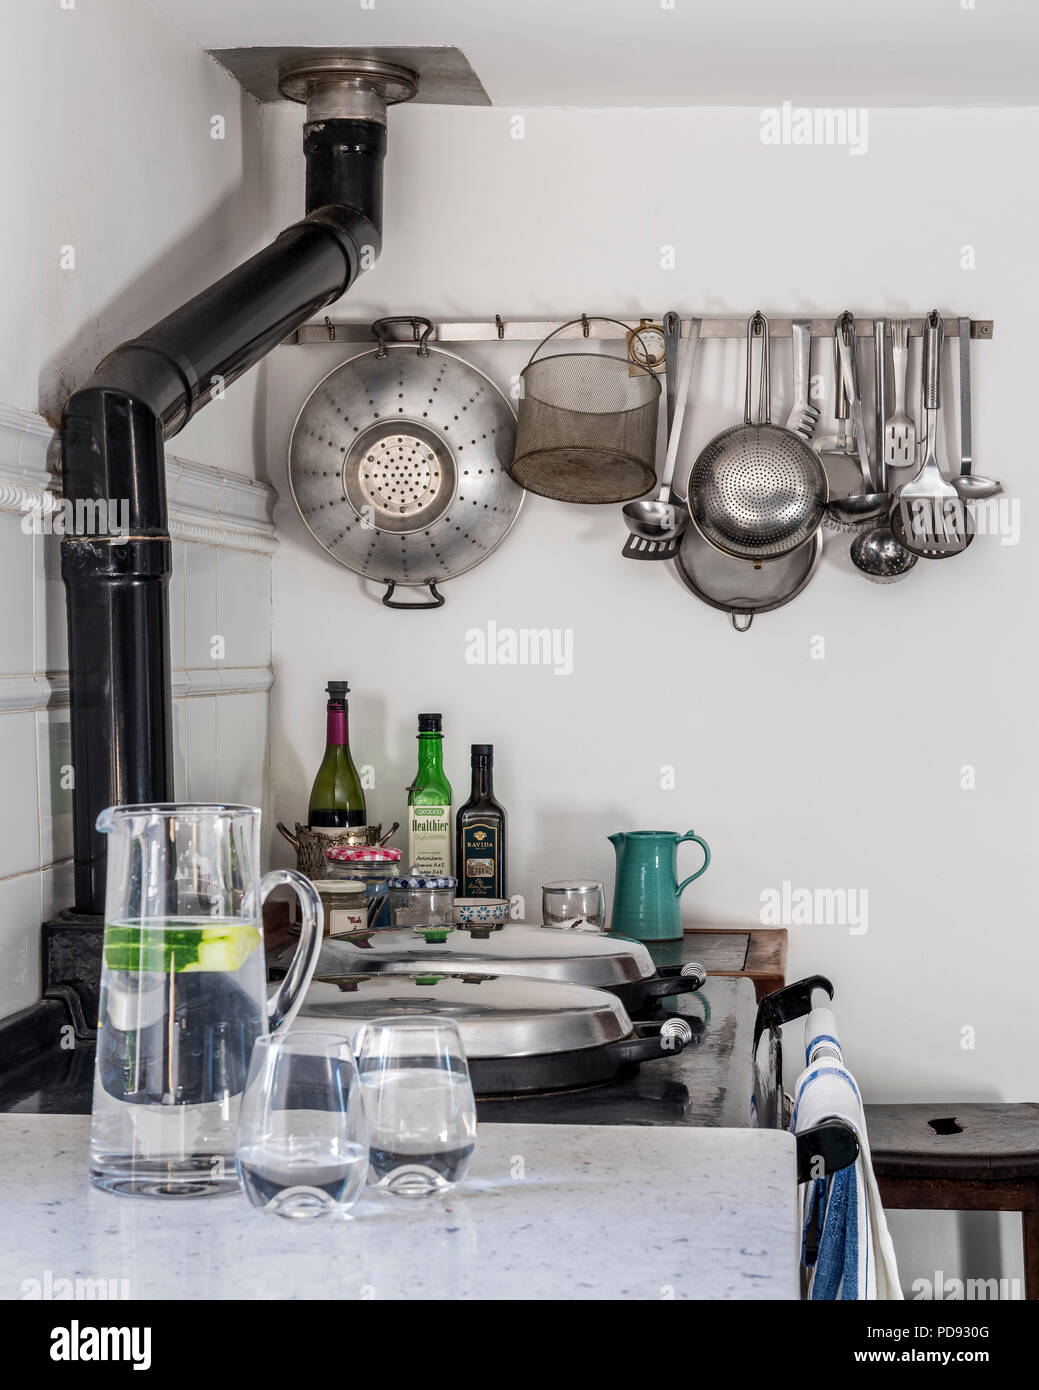 Cooking utensils hang from a rack above the Aga - Stock Image